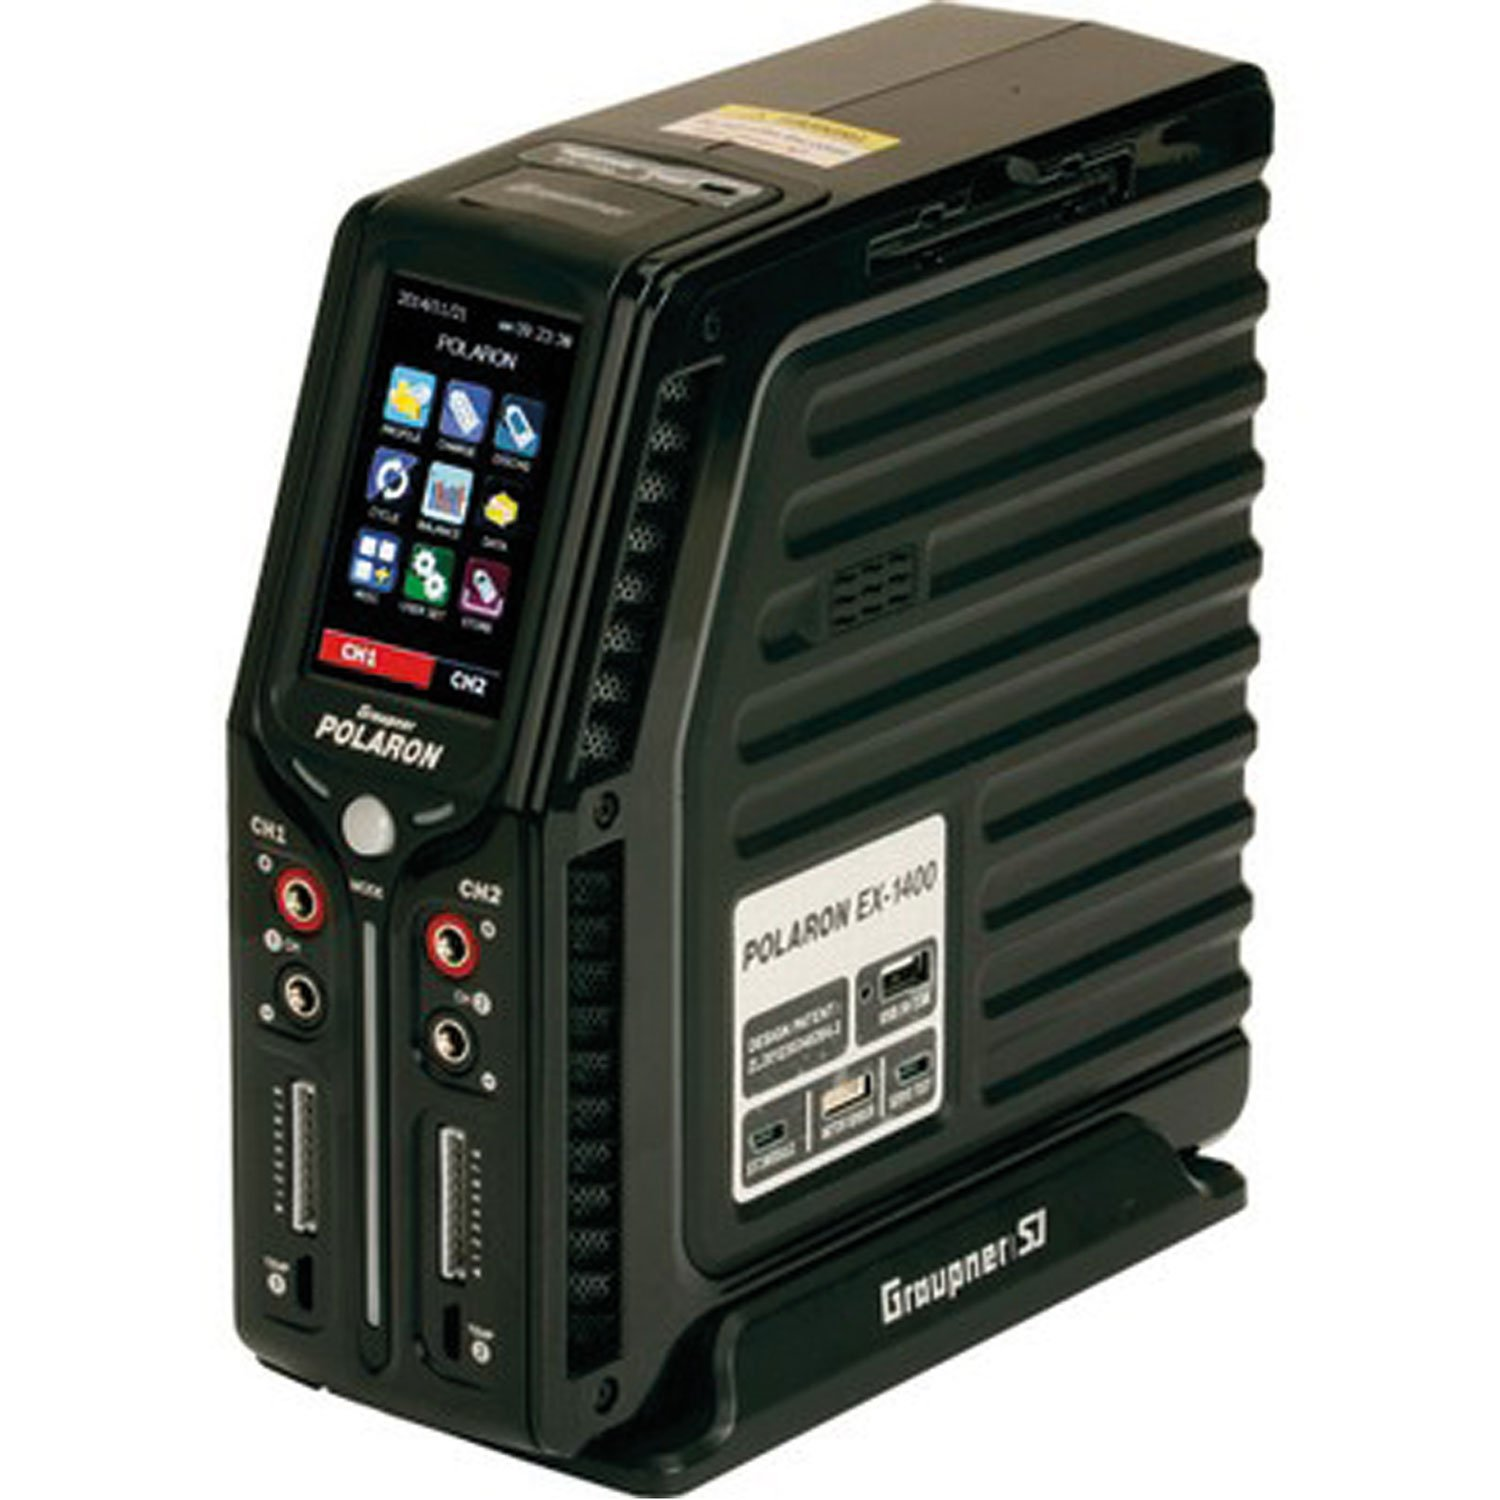 """GRAUPNER POLARON EX 1400 11-28V 2X730W 1-8S SILVER, WITH 3.0"""" COLOR TOUCH SCREEN"""